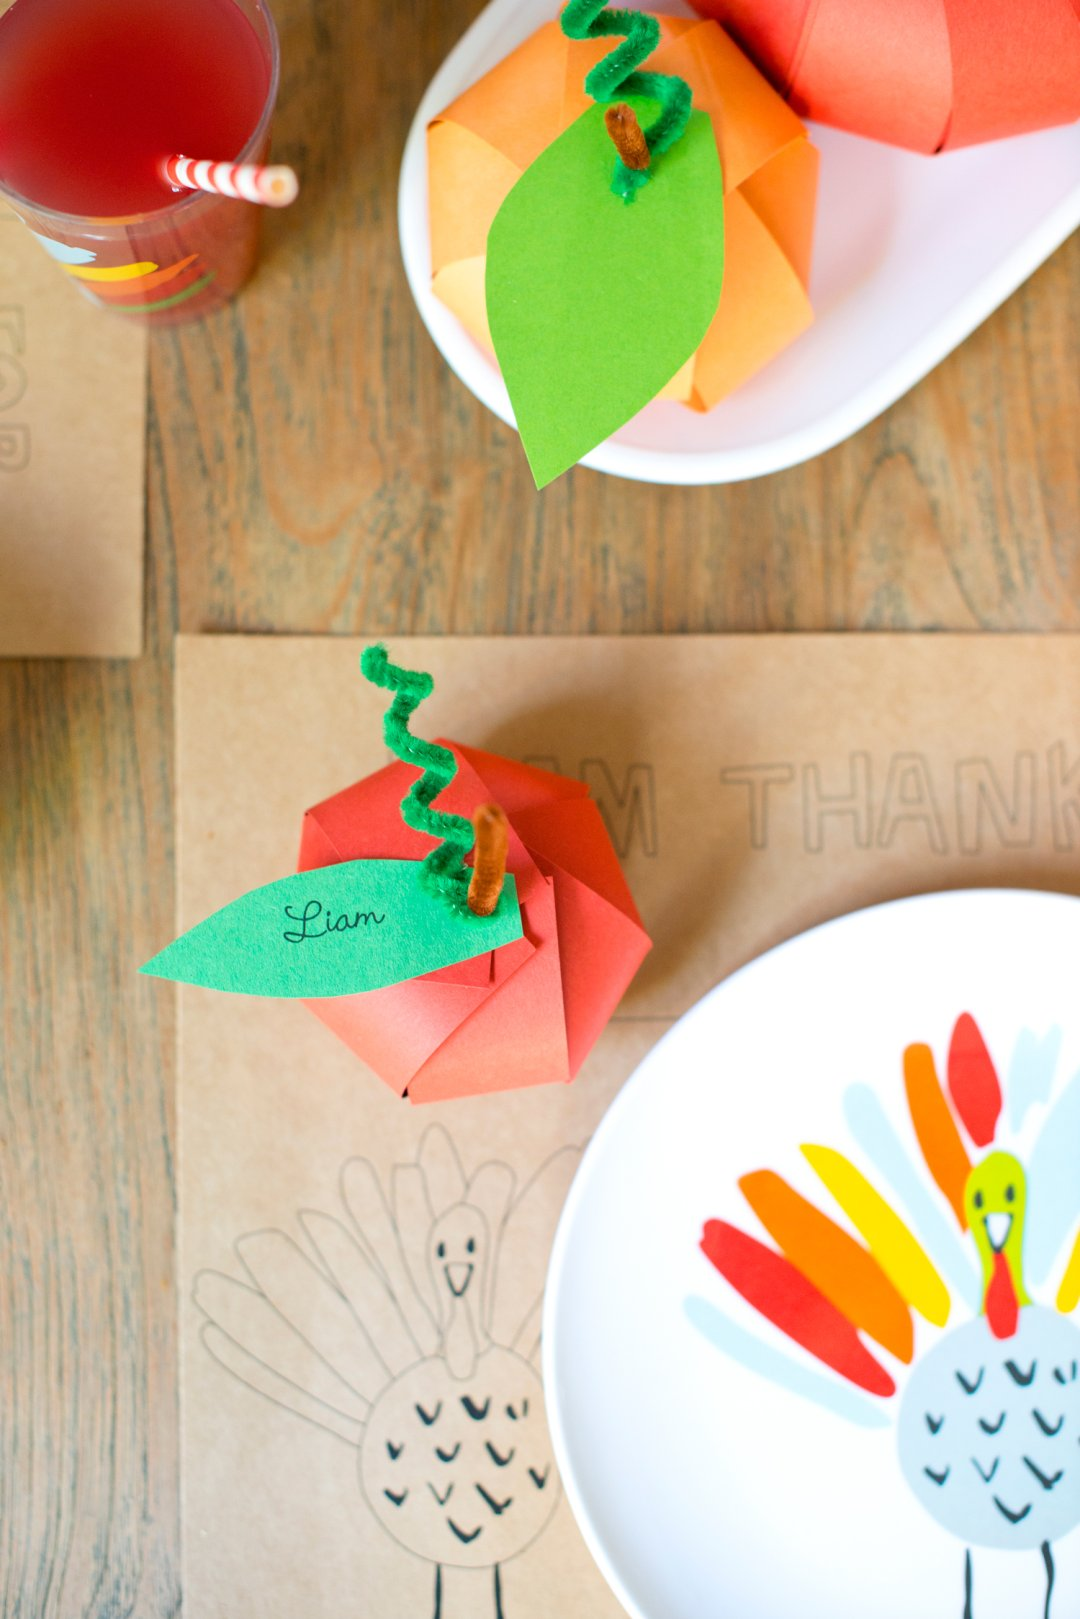 Homemade kids table placecards made from construction paper and felt pipecleaners